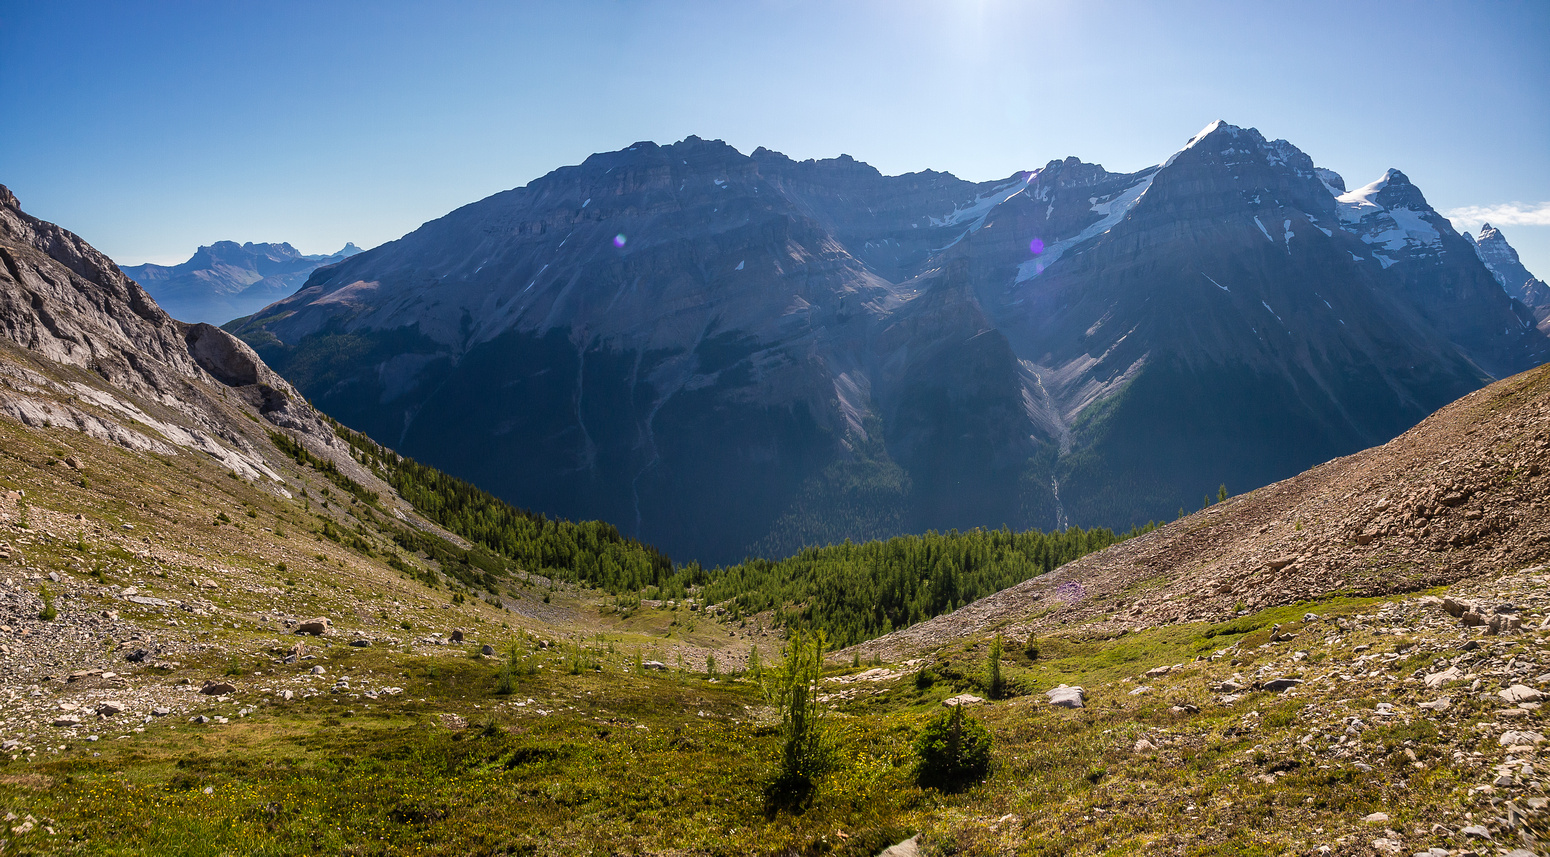 Descending through the upper larch forest.